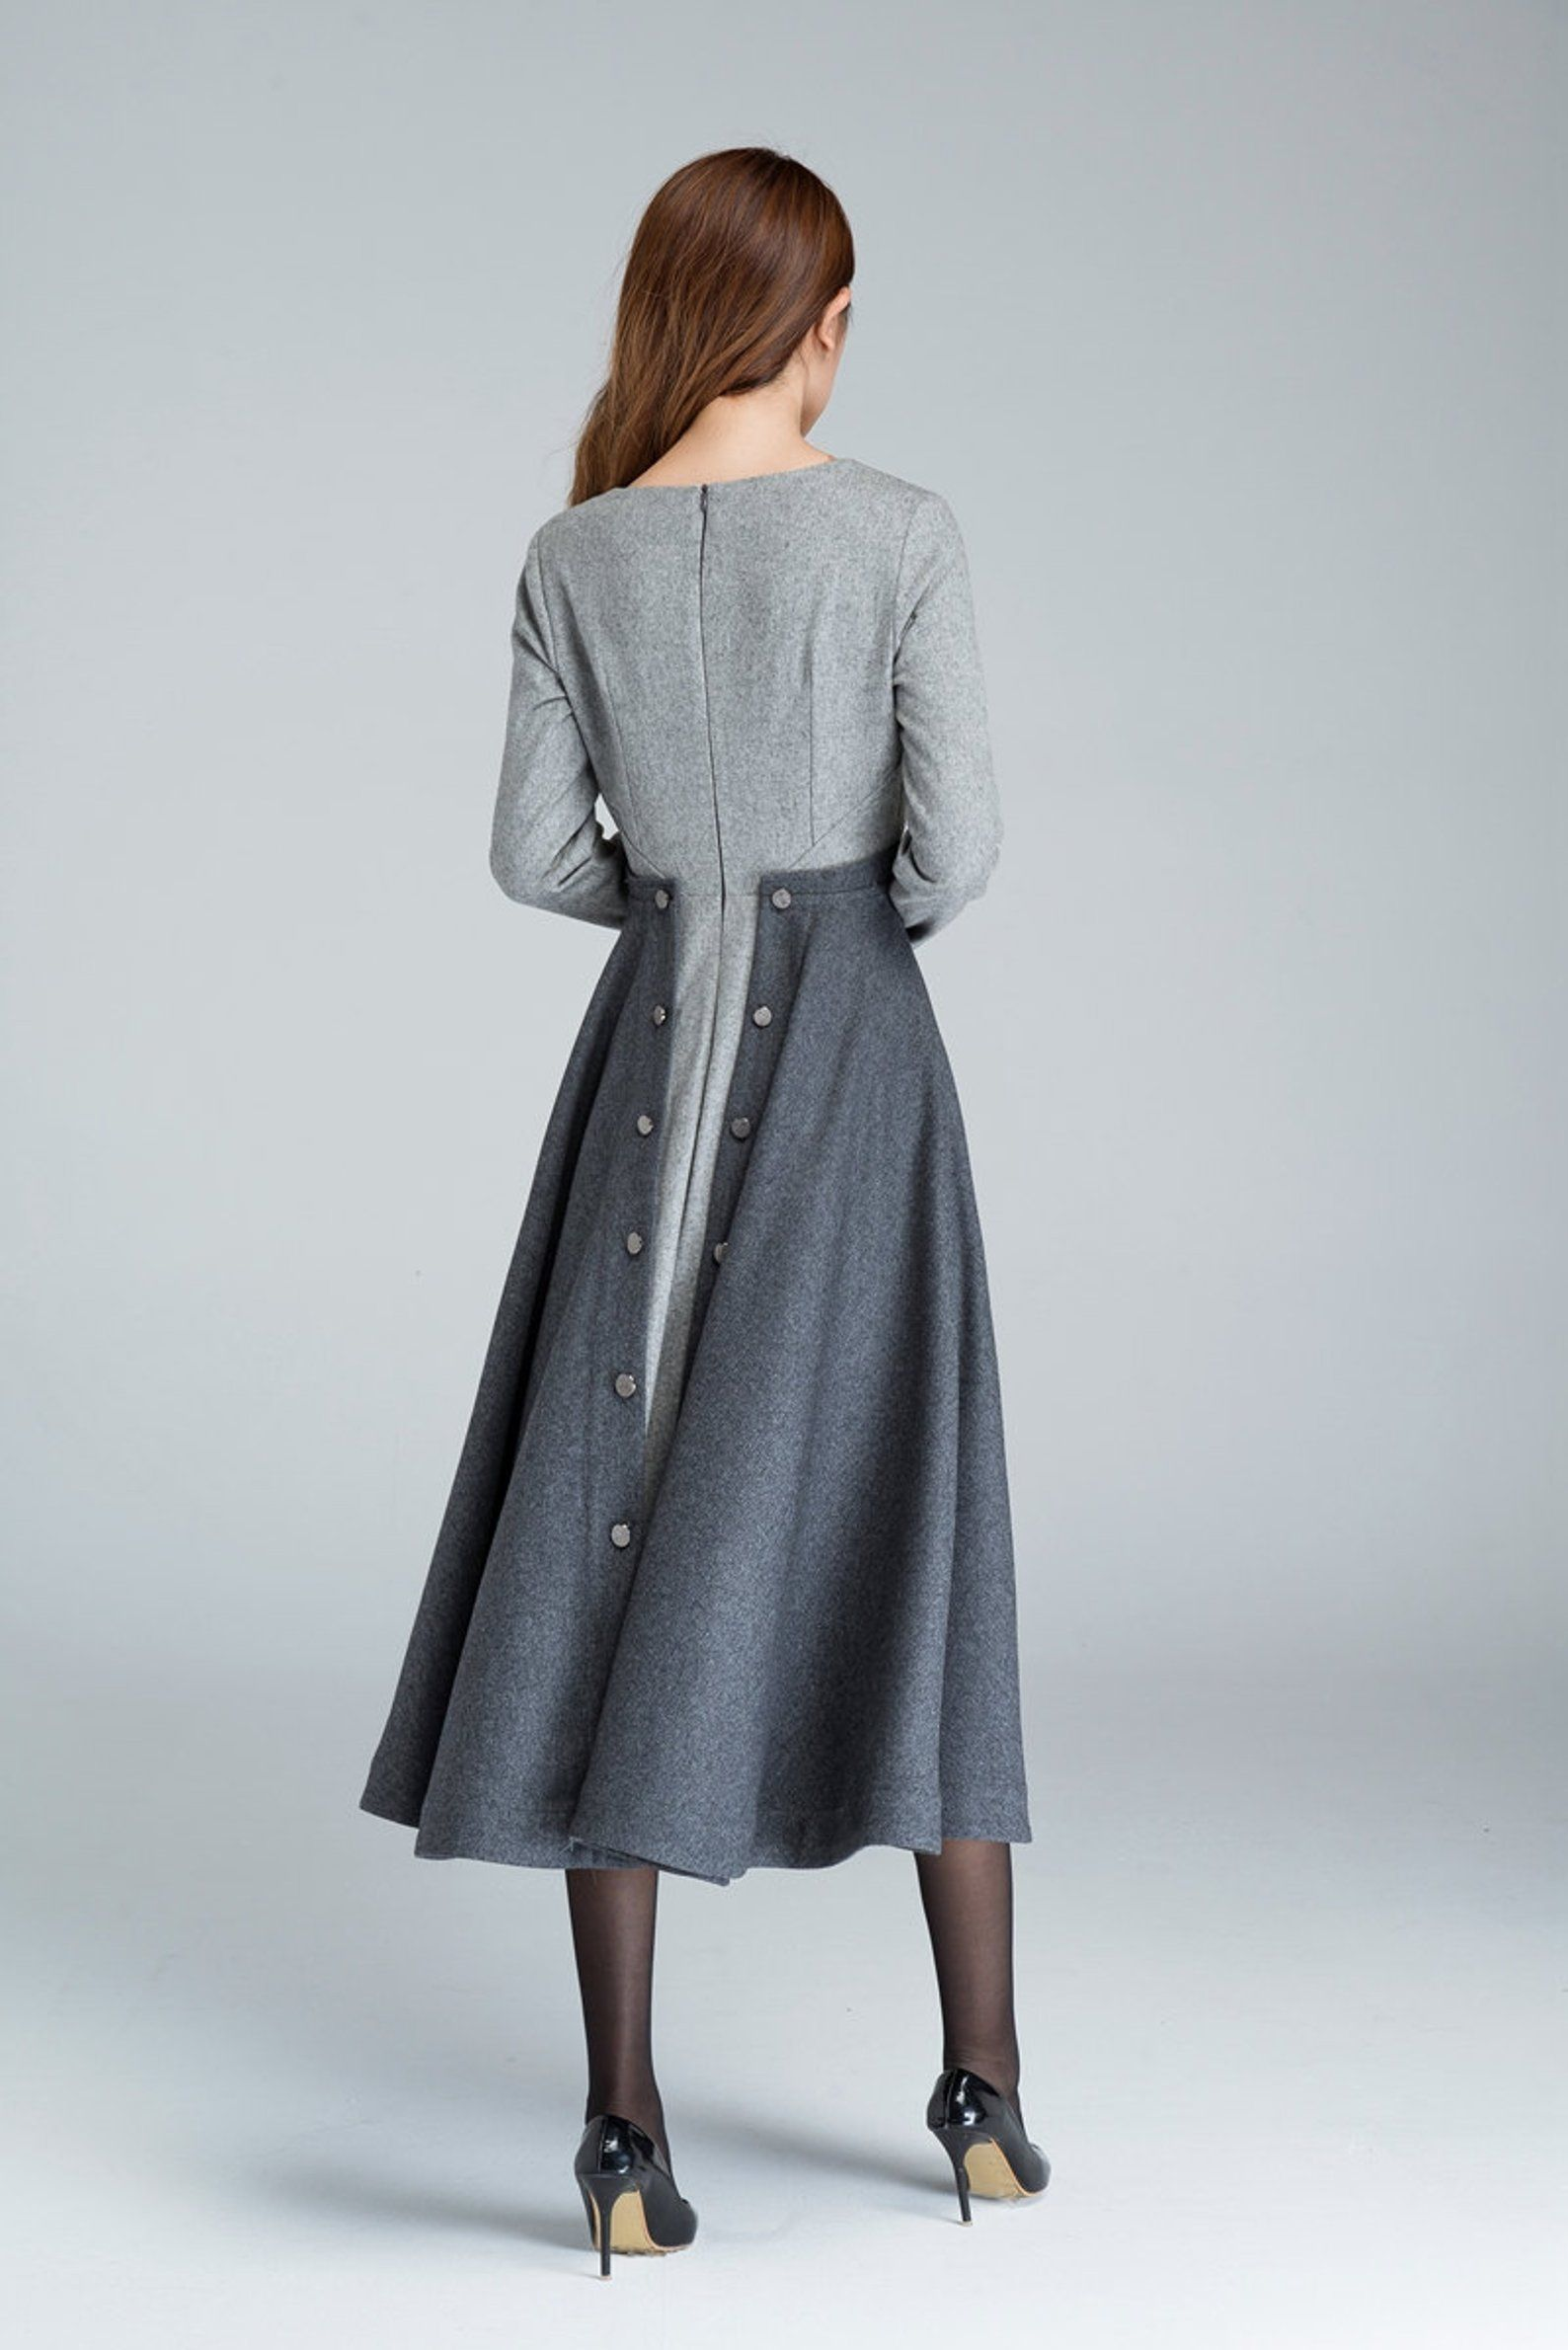 8s Grey Fit and Flare wool dress, womens dresses, Winter dress